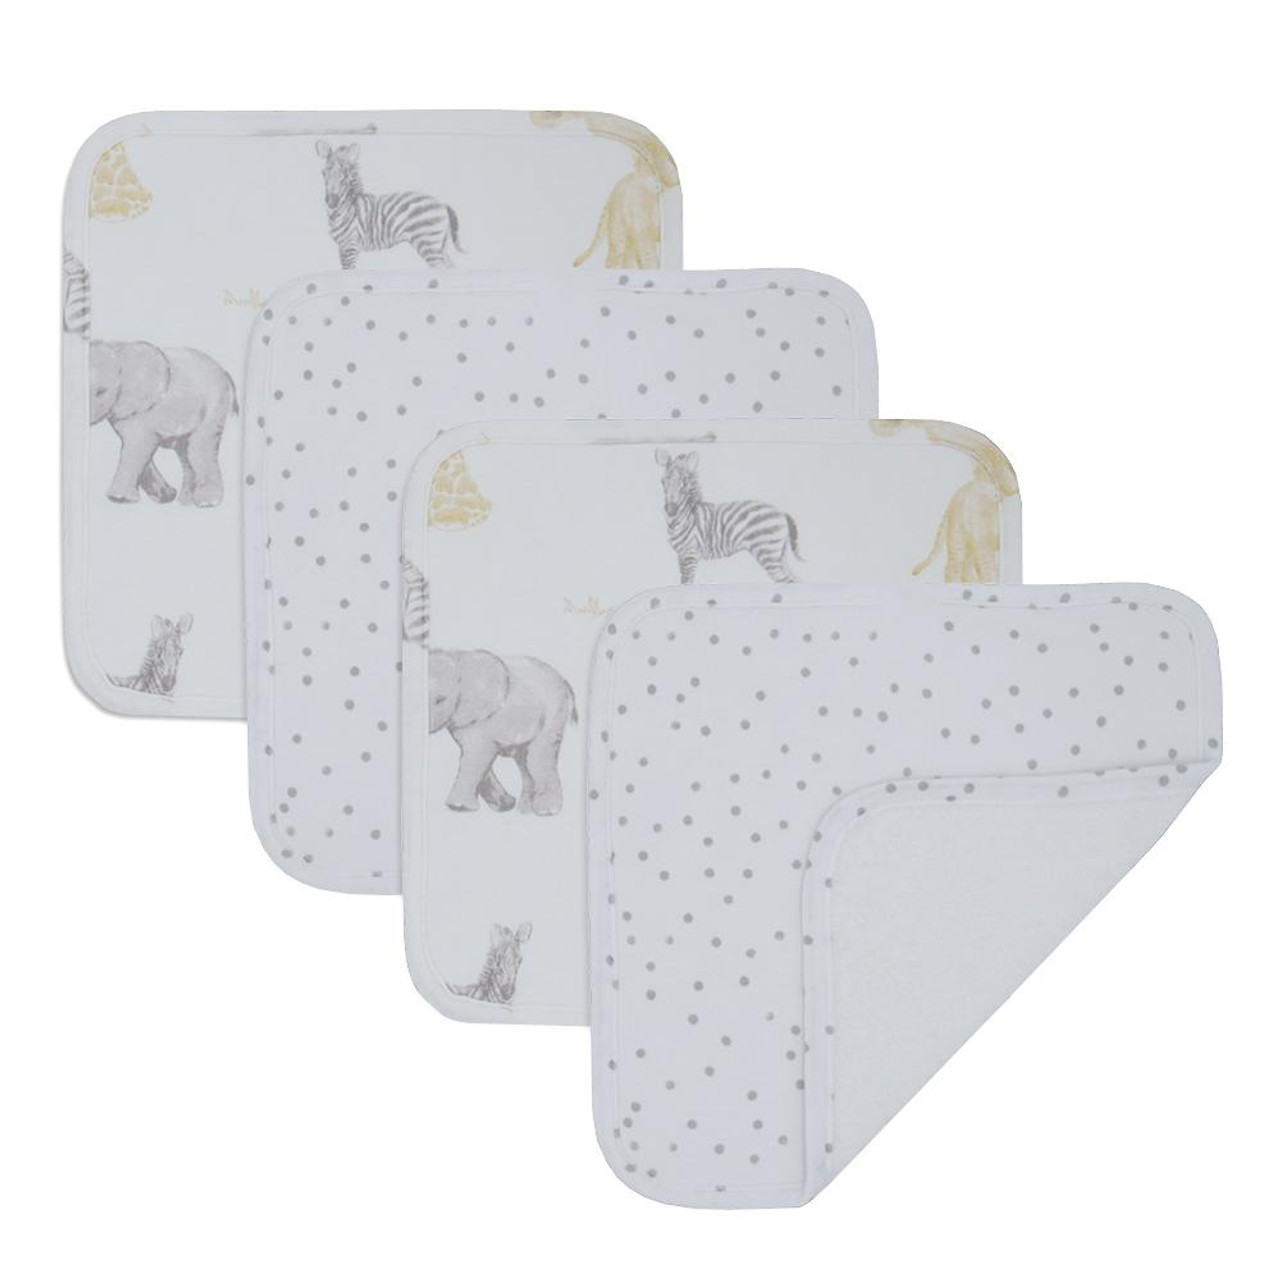 Living Textiles Cotton Towelling Jersey 4pk Face Wash Cloths - SAVANNA Living Textiles Cotton Towelling Jersey 4pk Face Wash Cloths - SWAN Add a bit if luxury to baby's day with the 4pk of washcloths from Living Textiles. These deluxe  washcloths are perfect for everyday use during bath time or on the go.